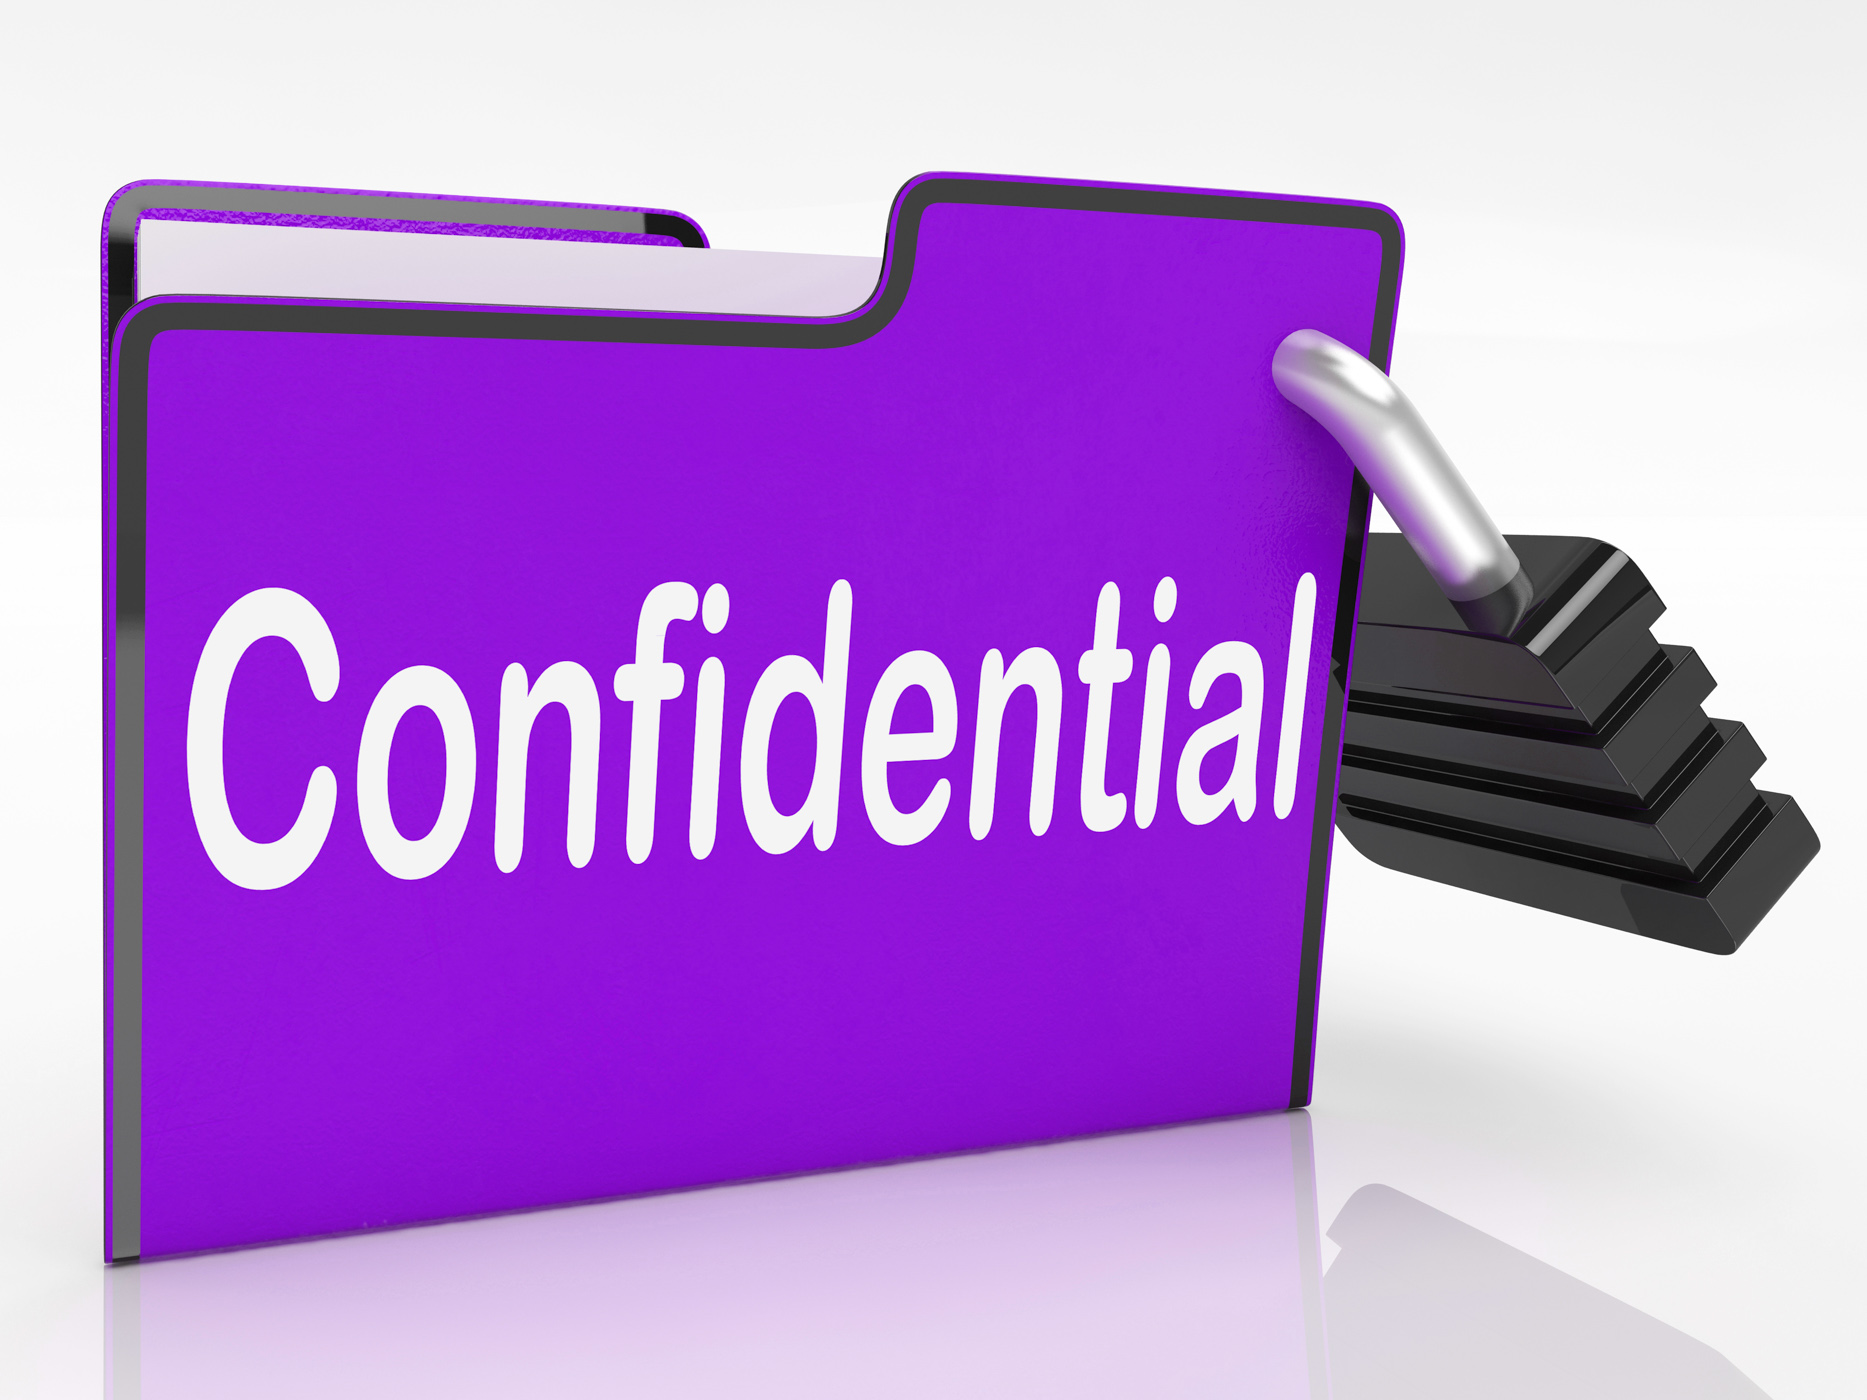 Confidential Security Means Restricted Organize And Confidentially, Private, Protected, Password, Paperwork, HQ Photo